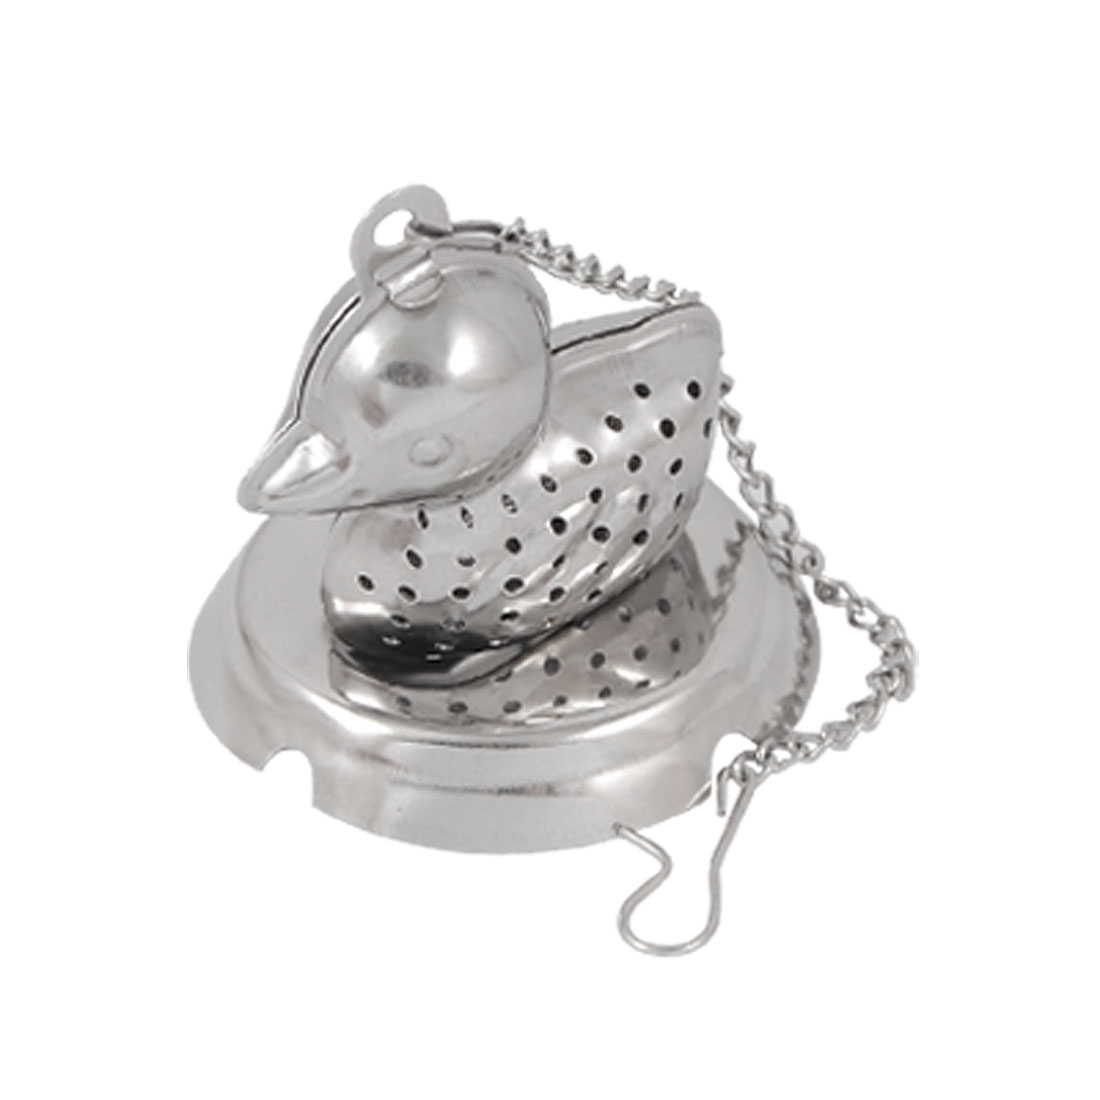 Silver Tone Duck Shaped Tea Infuser Strainer Mesh Ball w Mini Tray